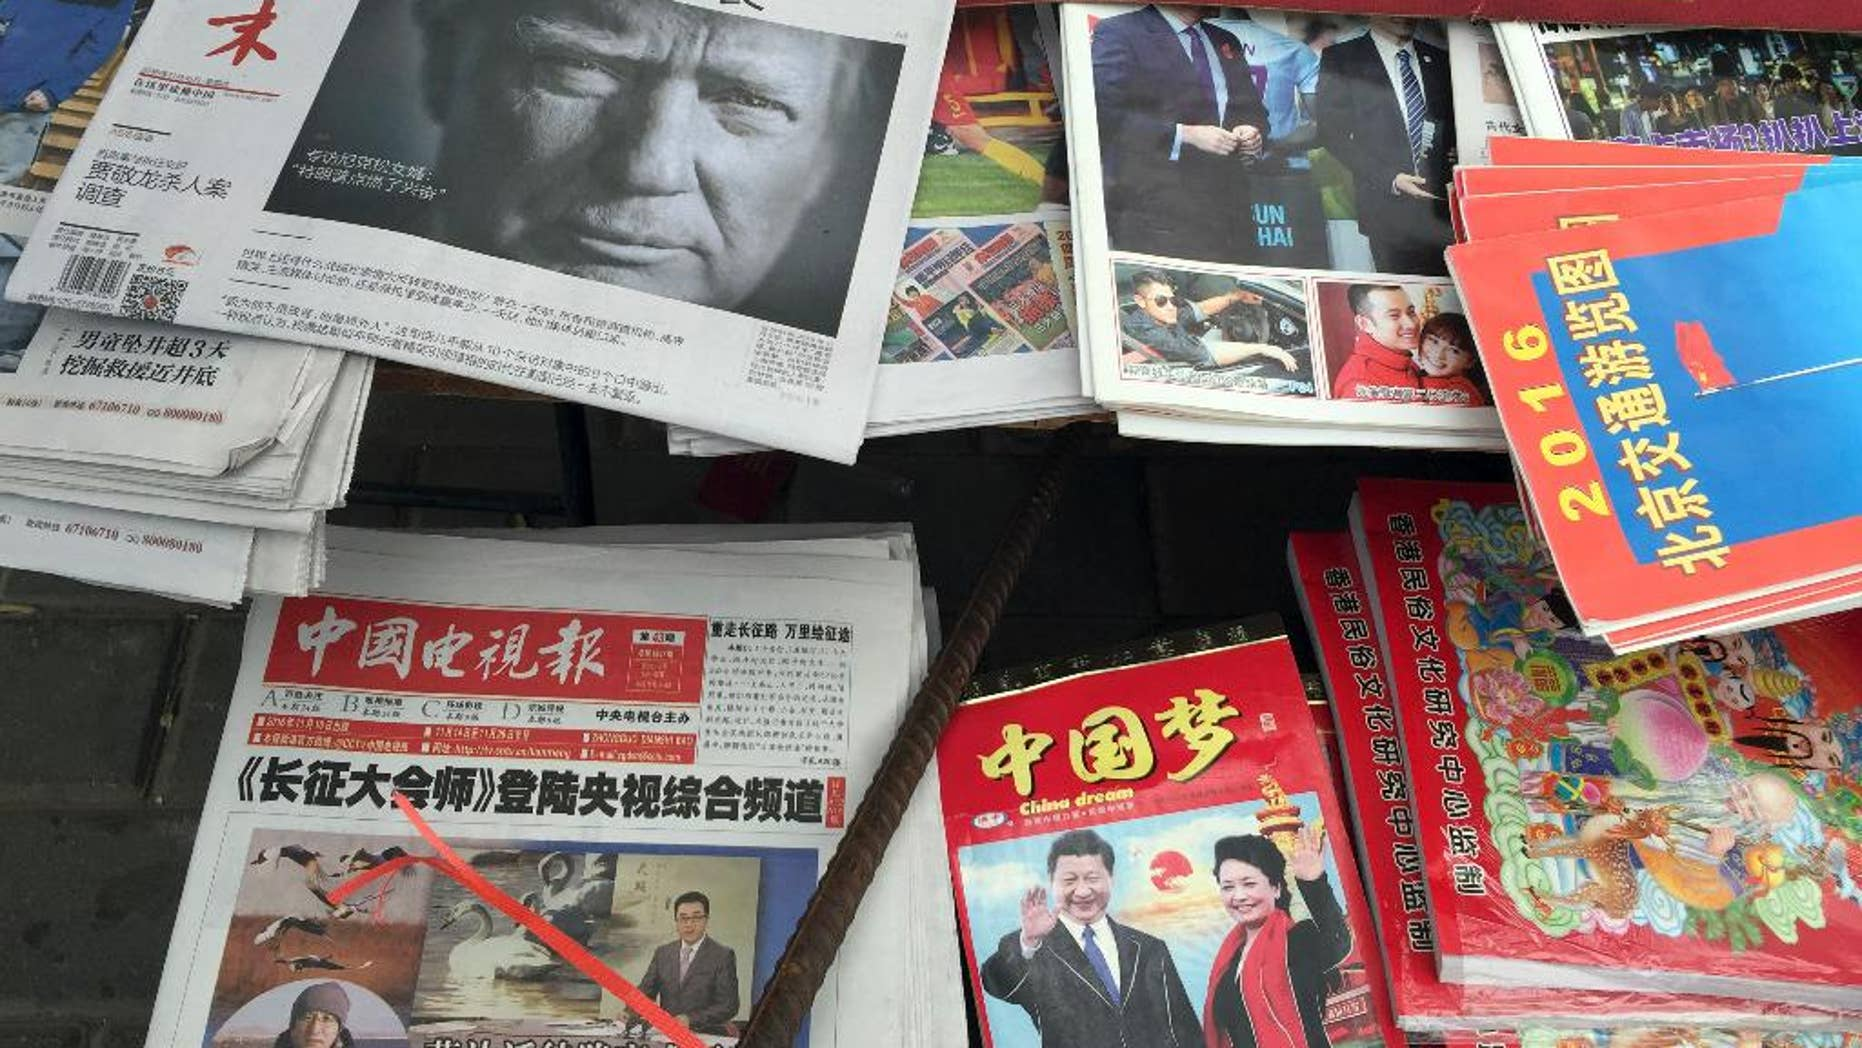 """A front page of a Chinese newspaper with a photo of U.S. President-elect Donald Trump and the headline """"Outsider counter attack"""" is displayed at a newsstand in Beijing, China, Thursday, Nov. 10, 2016. Trump is a mixed blessing for Chinese leaders. His threats to tear up trade deals and hike tariffs on Chinese goods could chill thriving commercial ties when Beijing is struggling to shore up economic growth. At the same time, Trump's suggestion he might reduce Washington's global strategic presence to focus on domestic issues would be a gift to Chinese leaders. They could expand their political and military profile in East Asia with less risk of conflict. (AP Photo/Ng Han Guan)"""